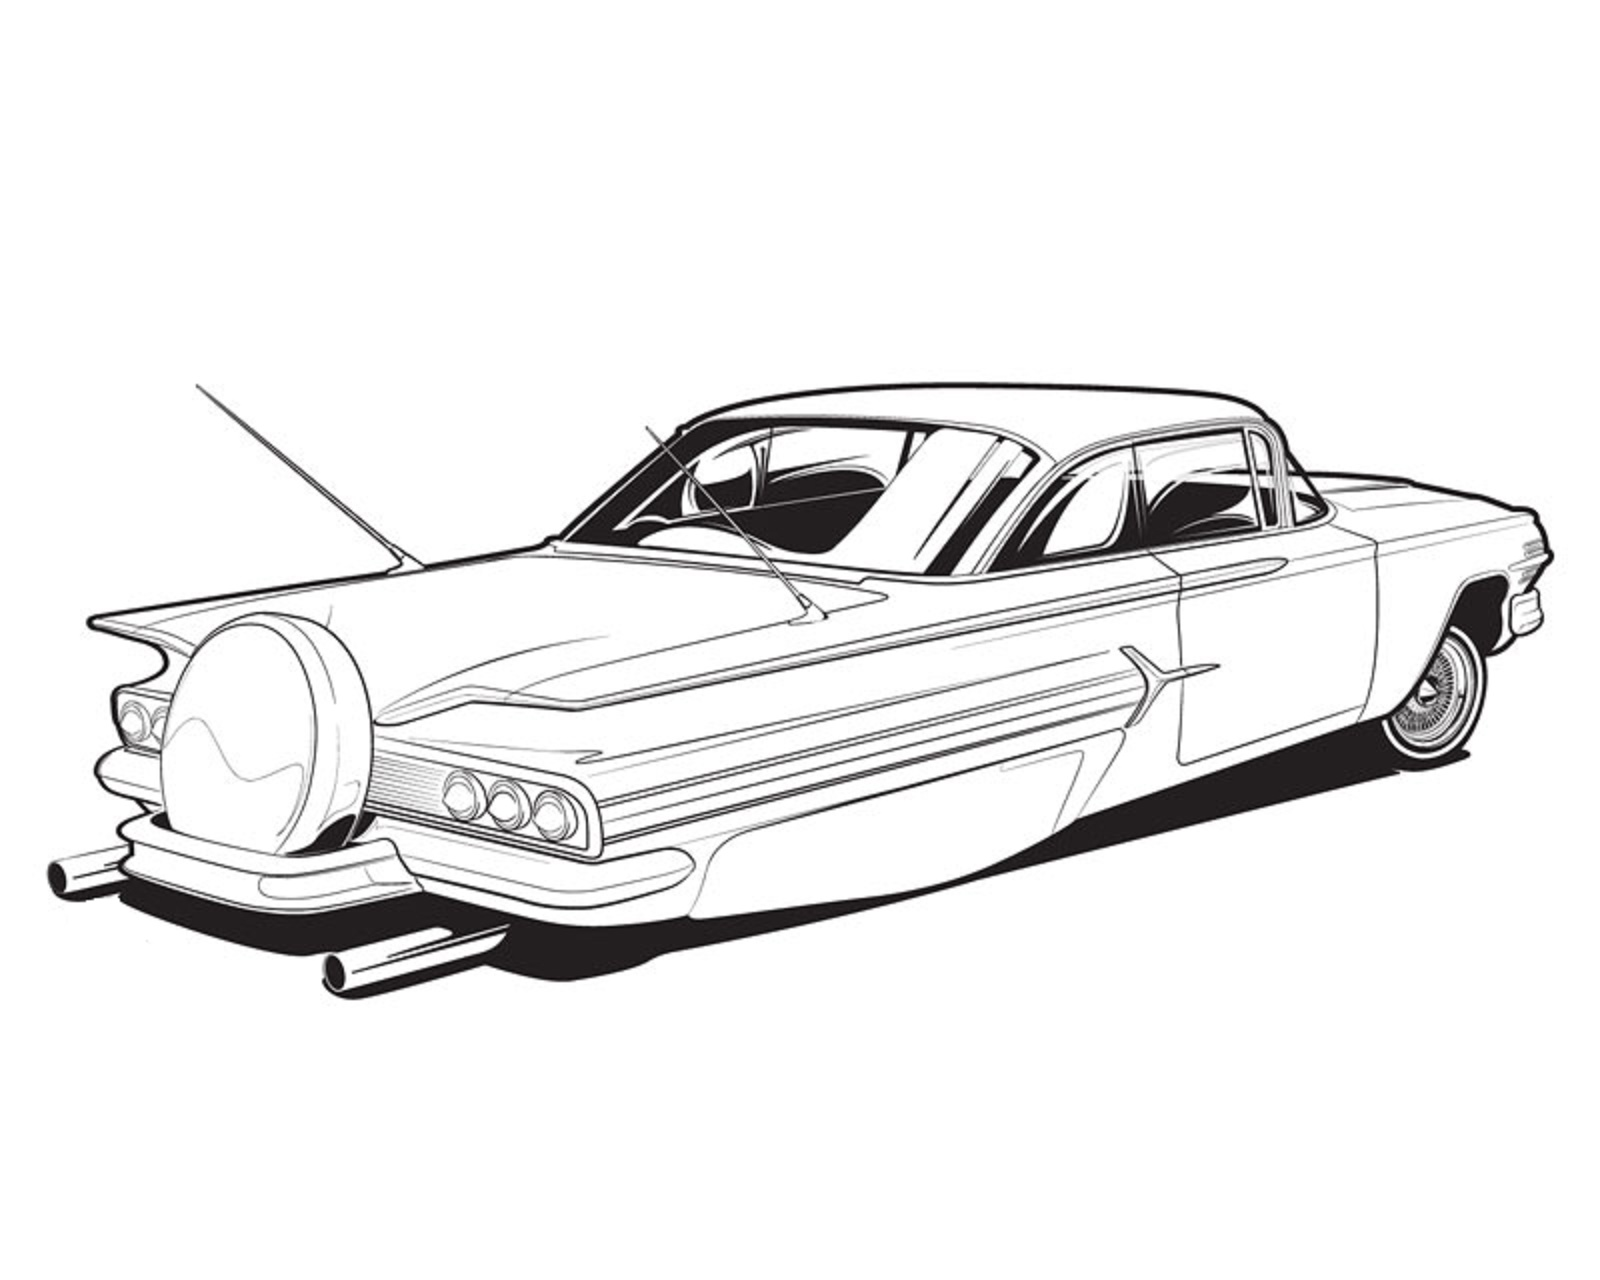 1600x1280 Pin By Kerry Sr On Cartruck Bw Illustrations Cars